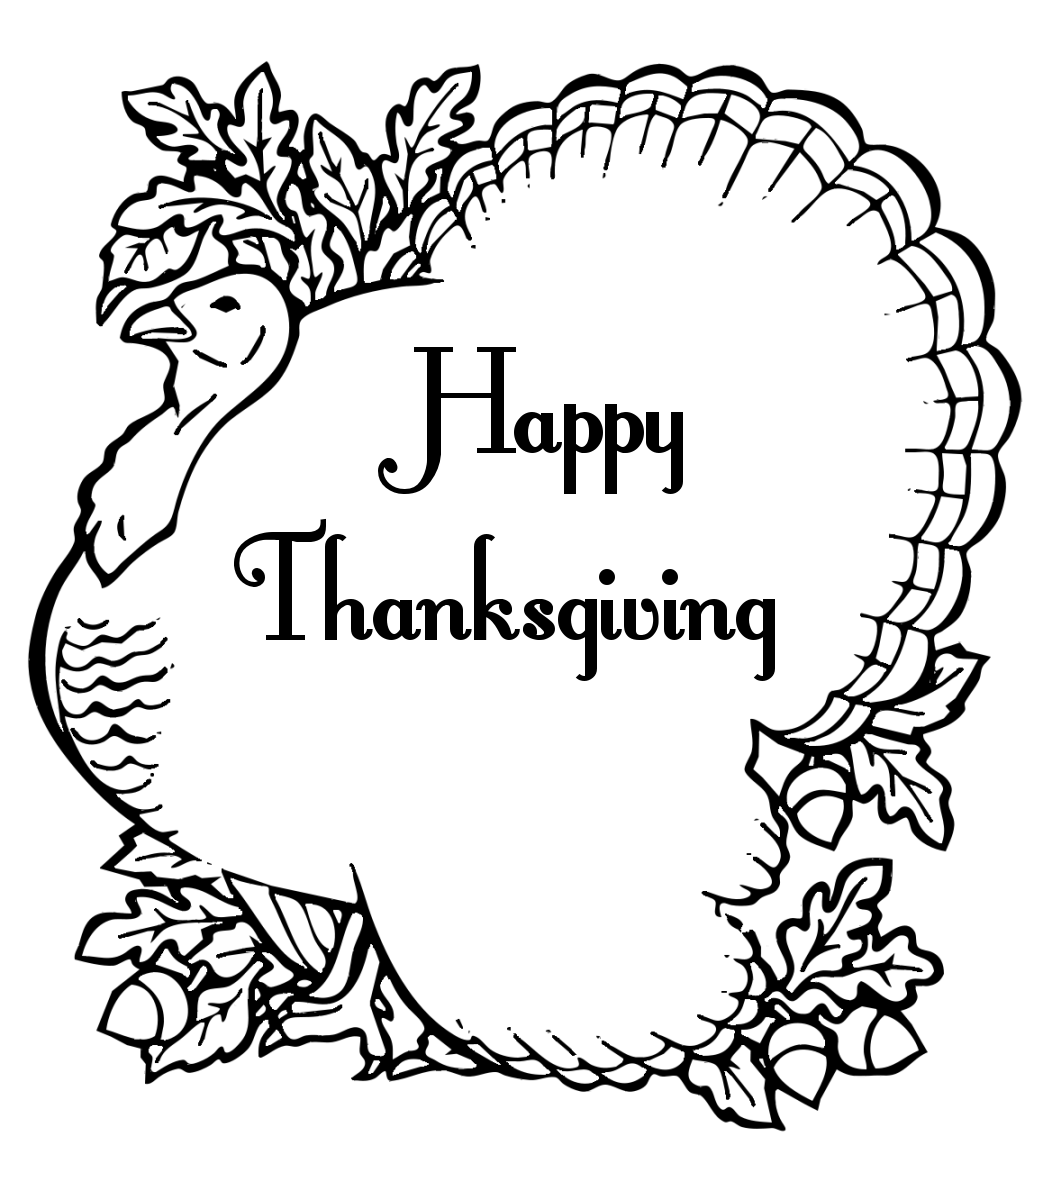 Printable adult thanksgiving coloring sheet - Thanksgiving Turkey Coloring Pages